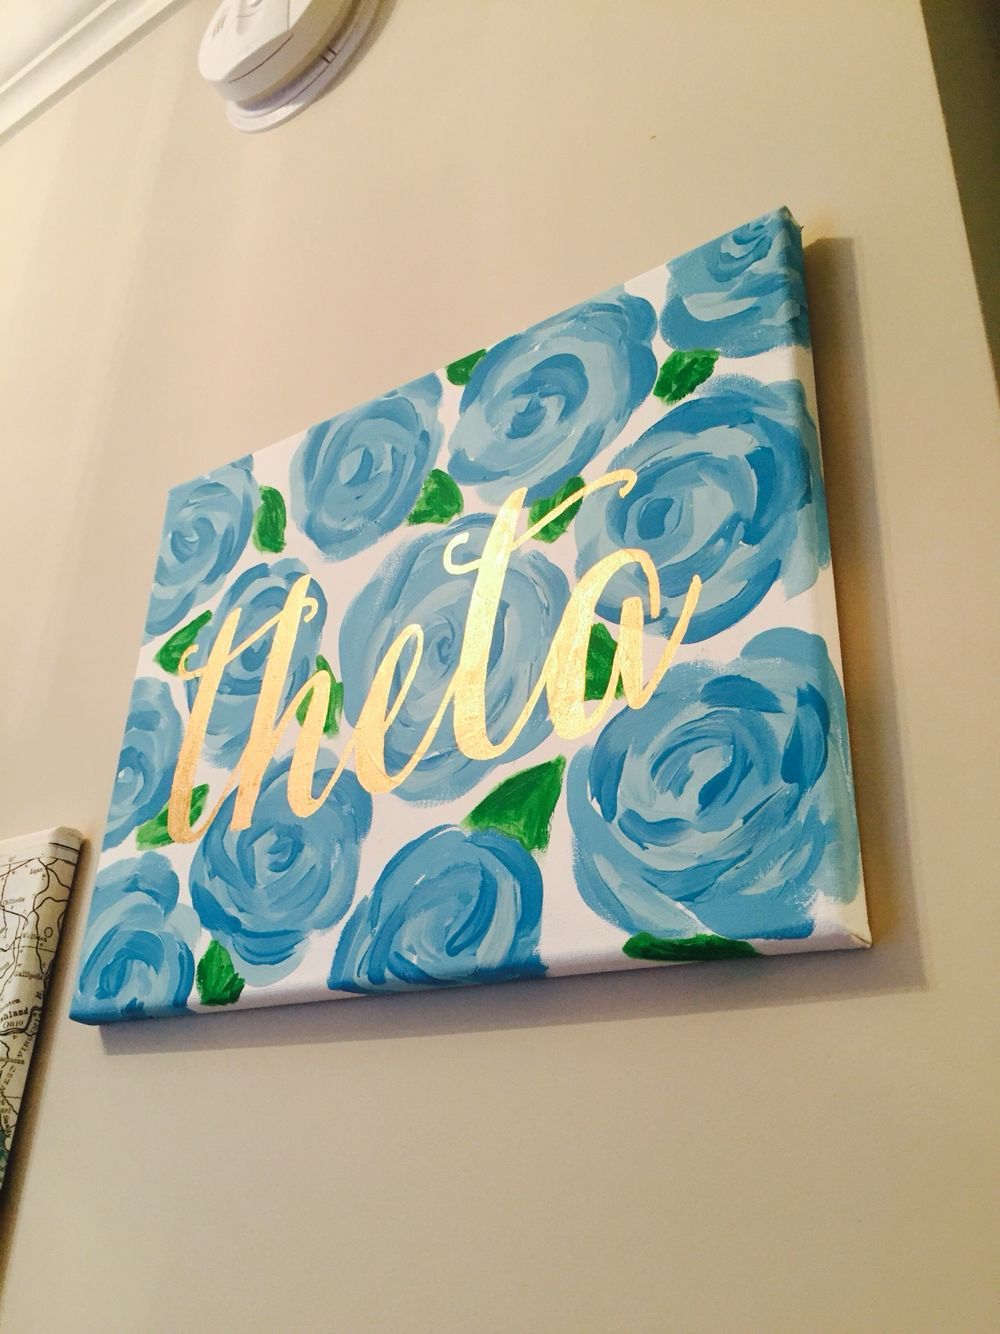 Kappa alpha theta sorority lilly pulitzer painting in blue